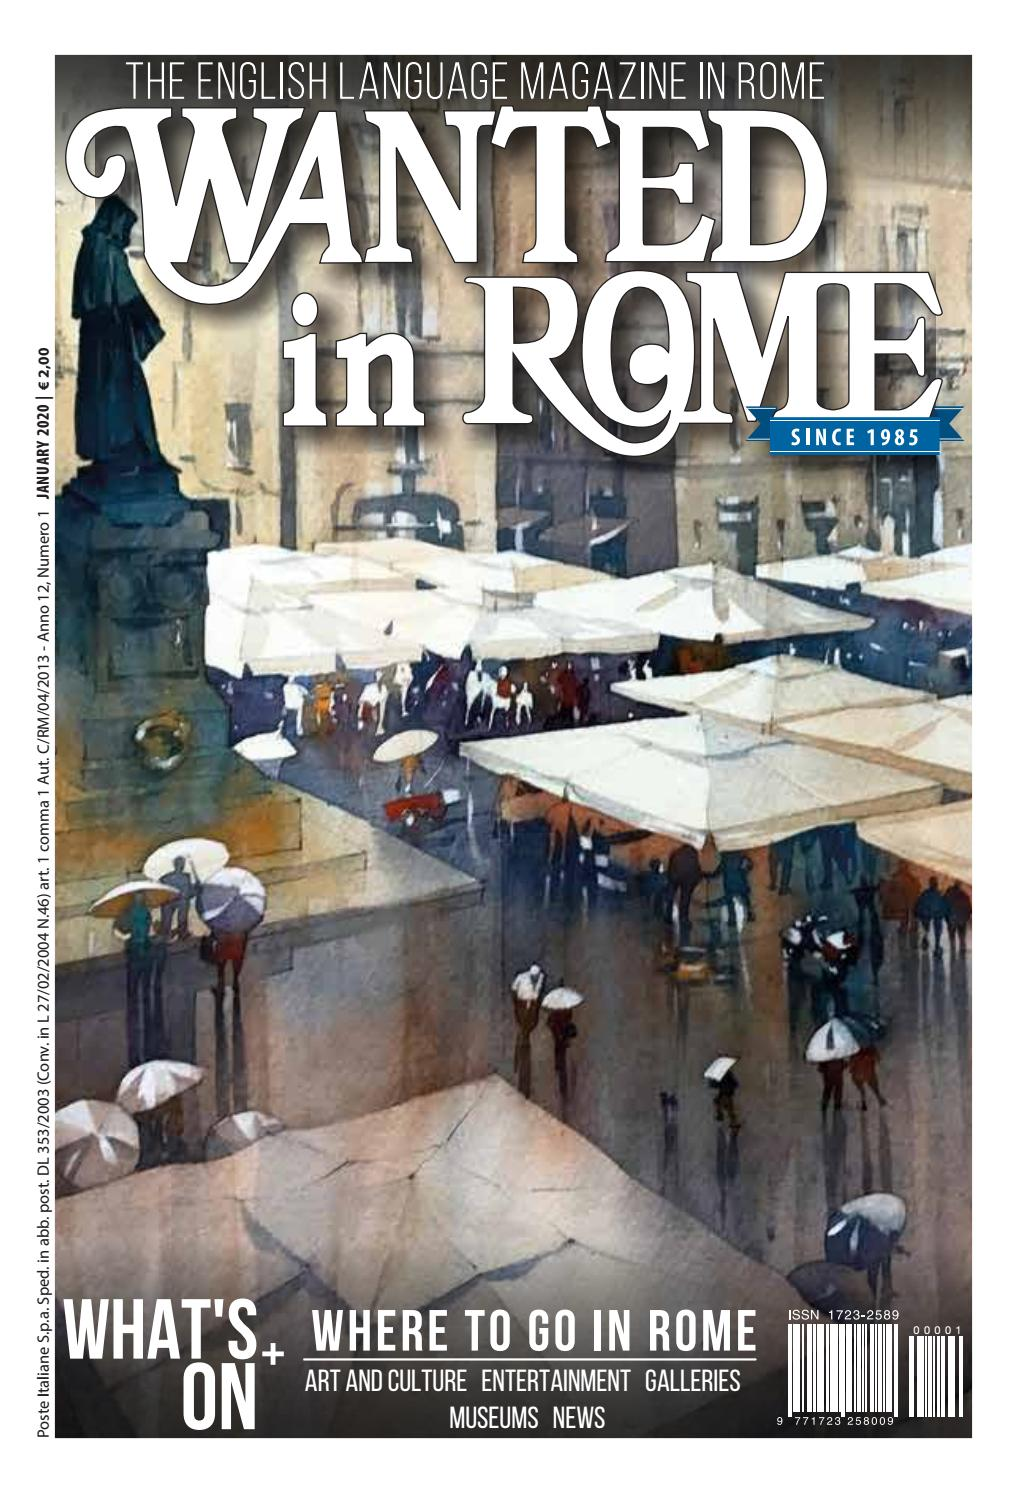 Colori In Luce Correggio wanted in rome - january 2020 by wanted in rome - issuu